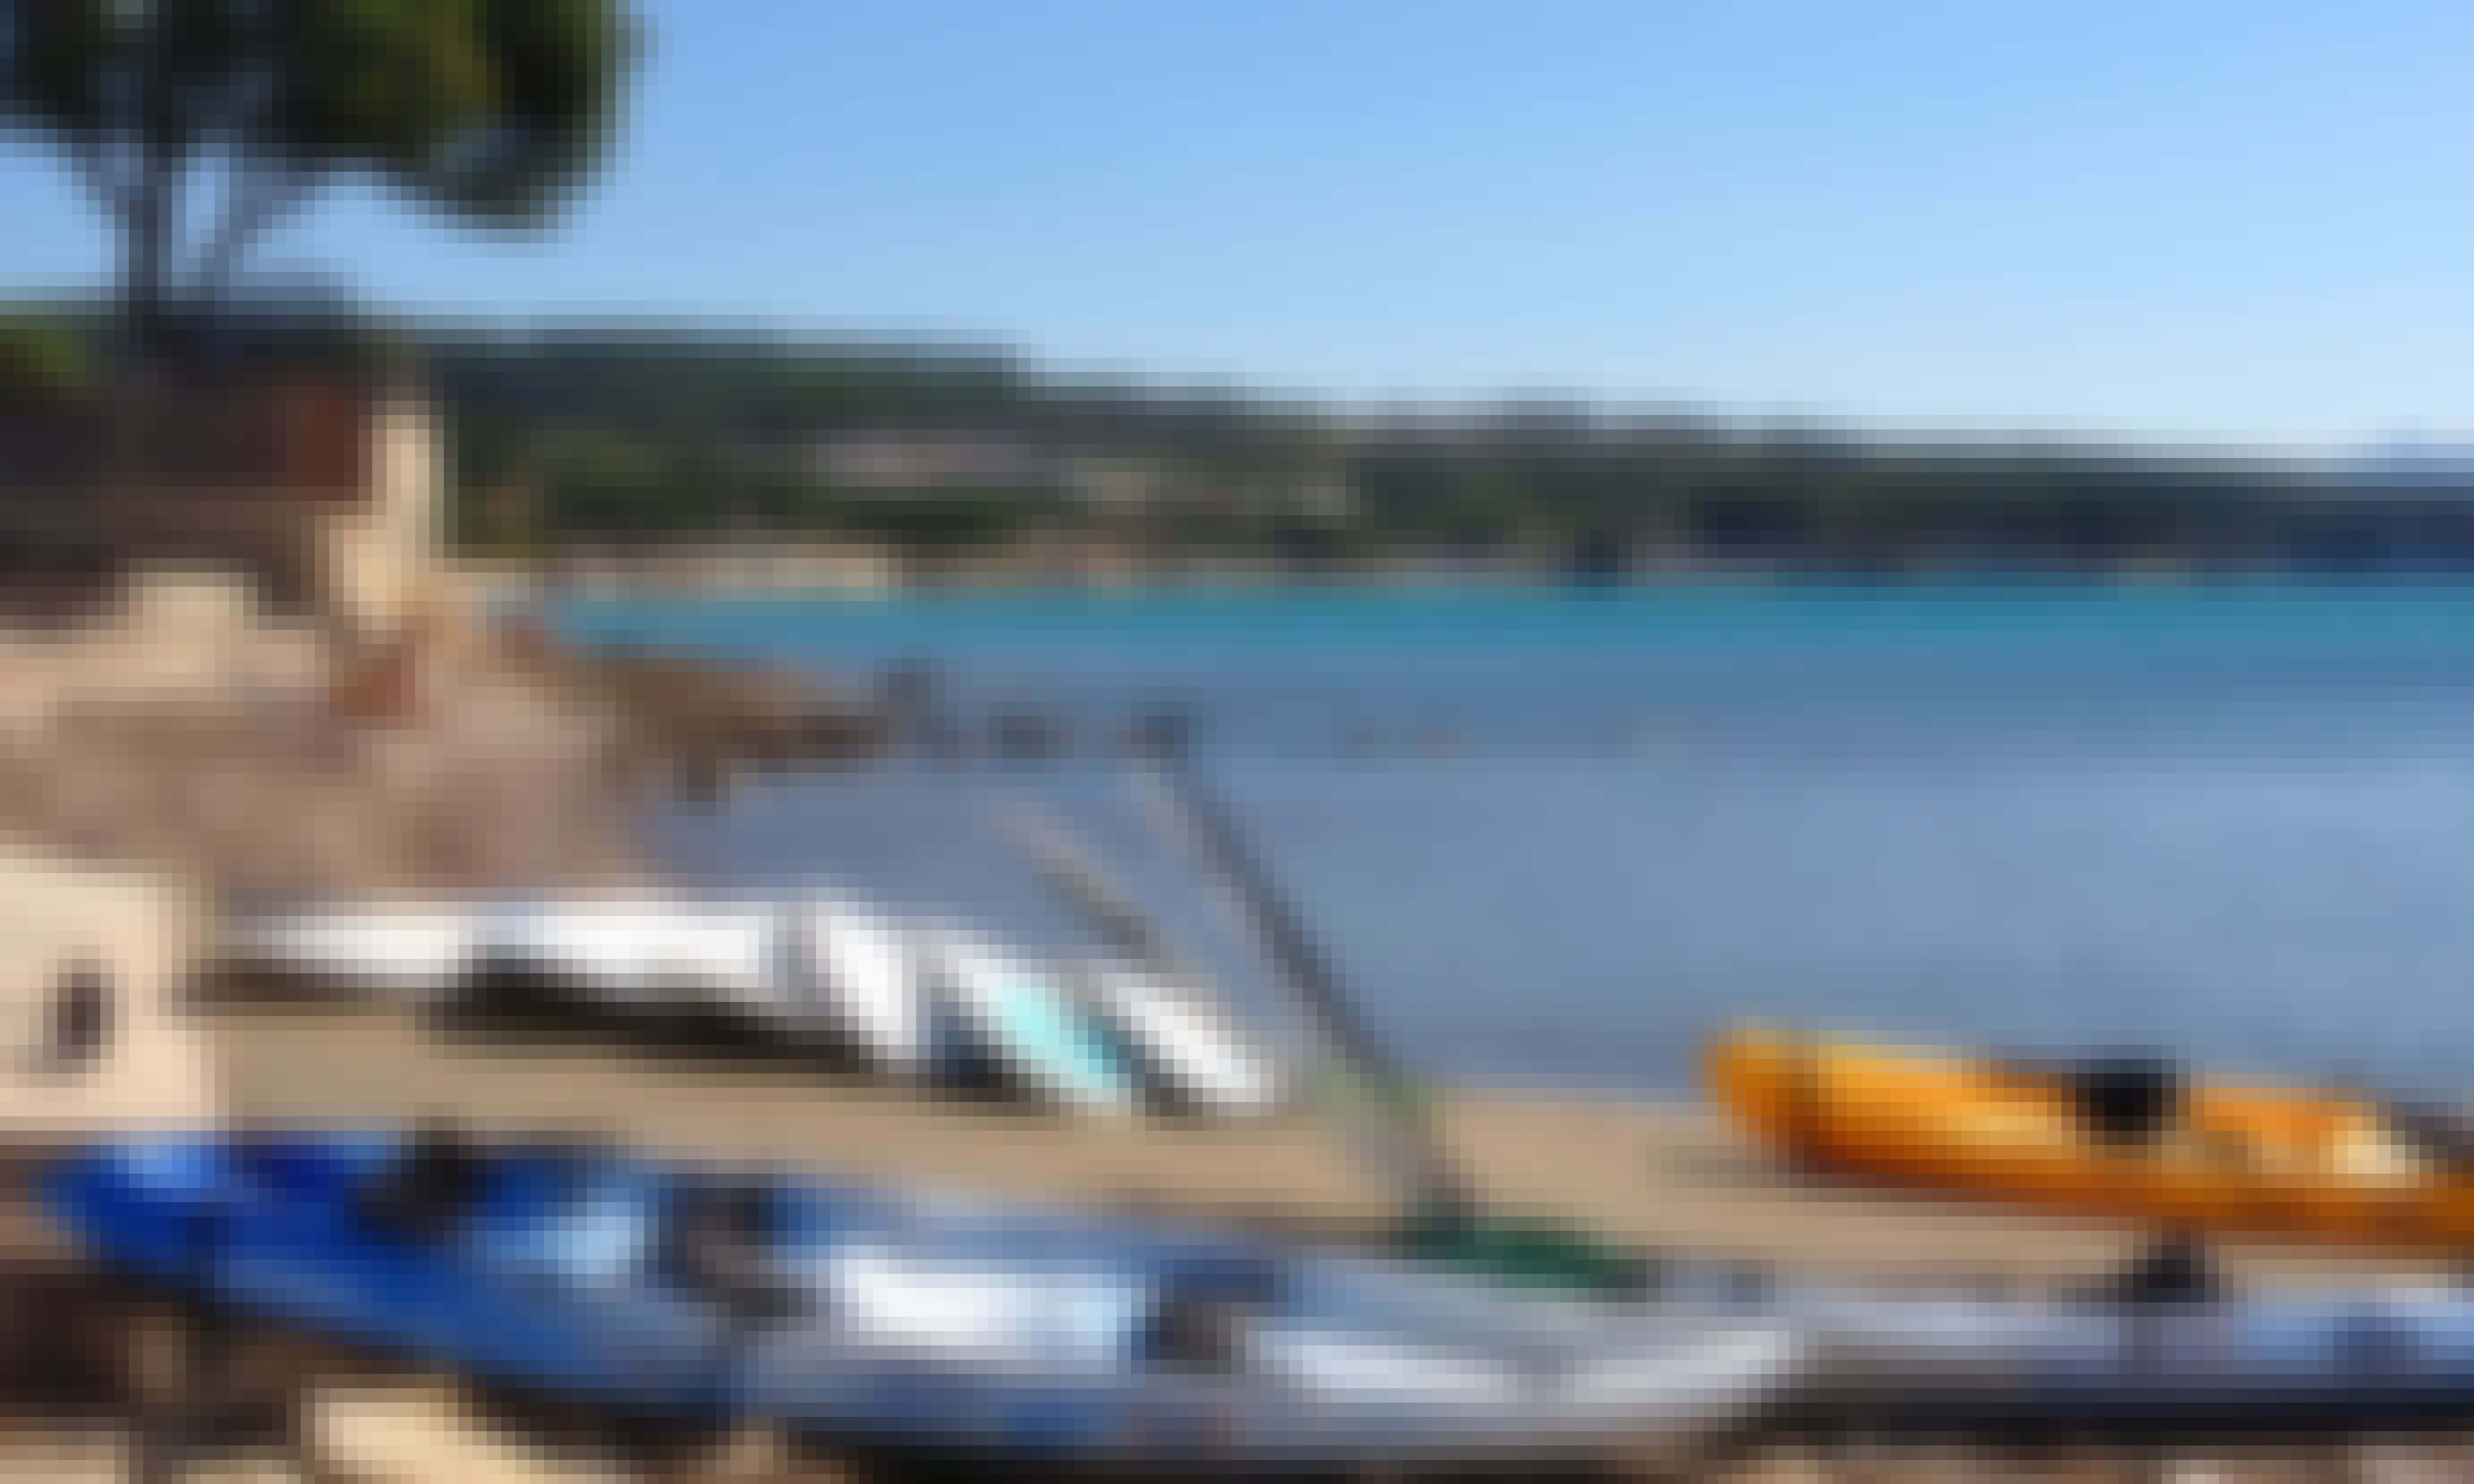 3-People Kayak for Hire & Paddle Lessons in La Ciotat, France